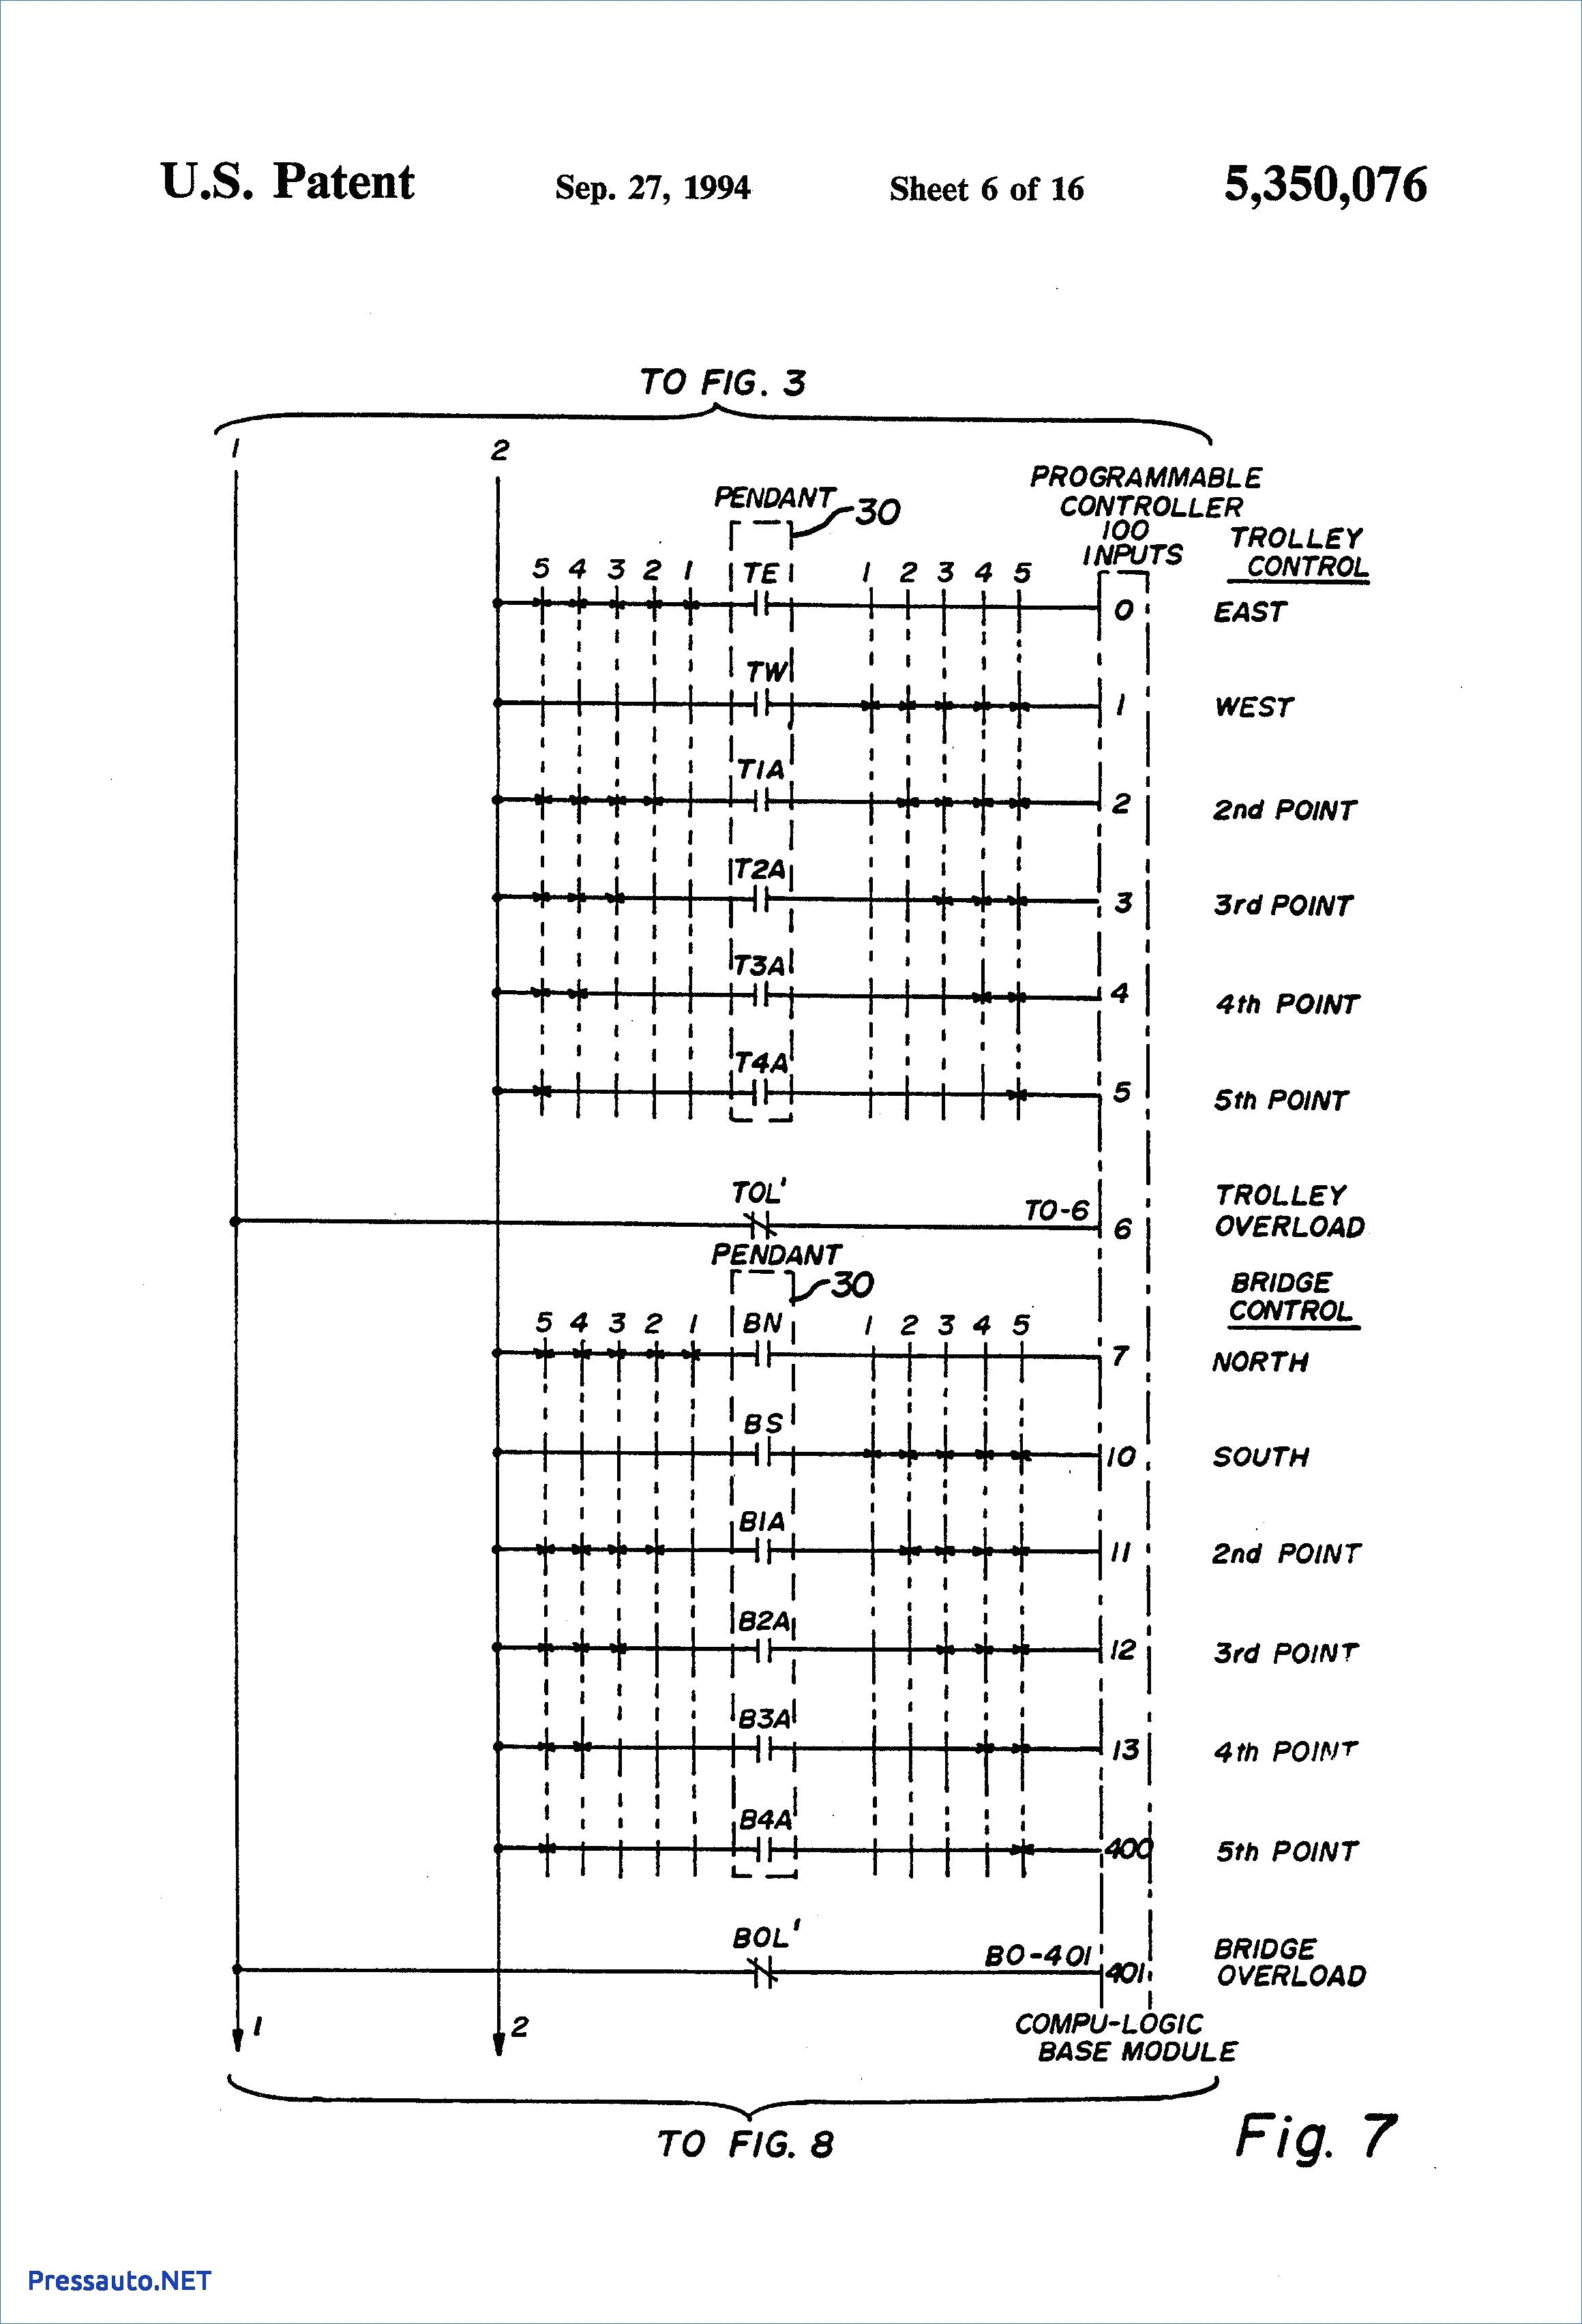 harrington hoist wiring diagram Collection-harrington hoist wiring diagram  2-b. DOWNLOAD. Wiring Diagram ...